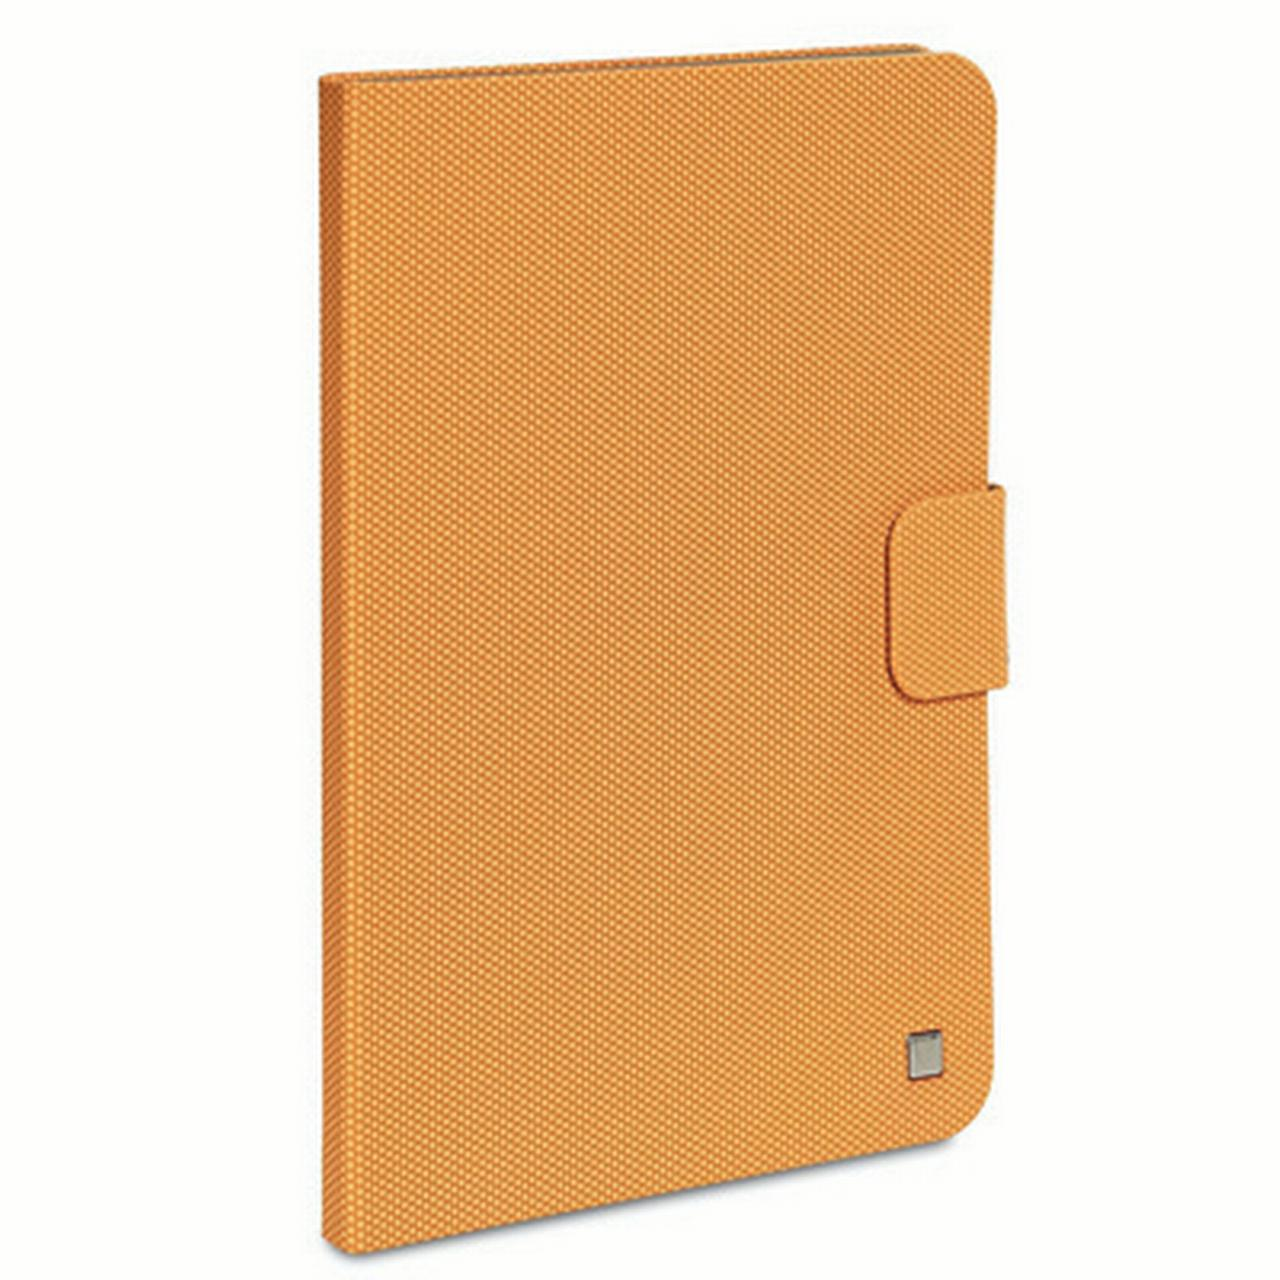 Verbatim Folio Case for Apple iPad Air, Tangerine Orange